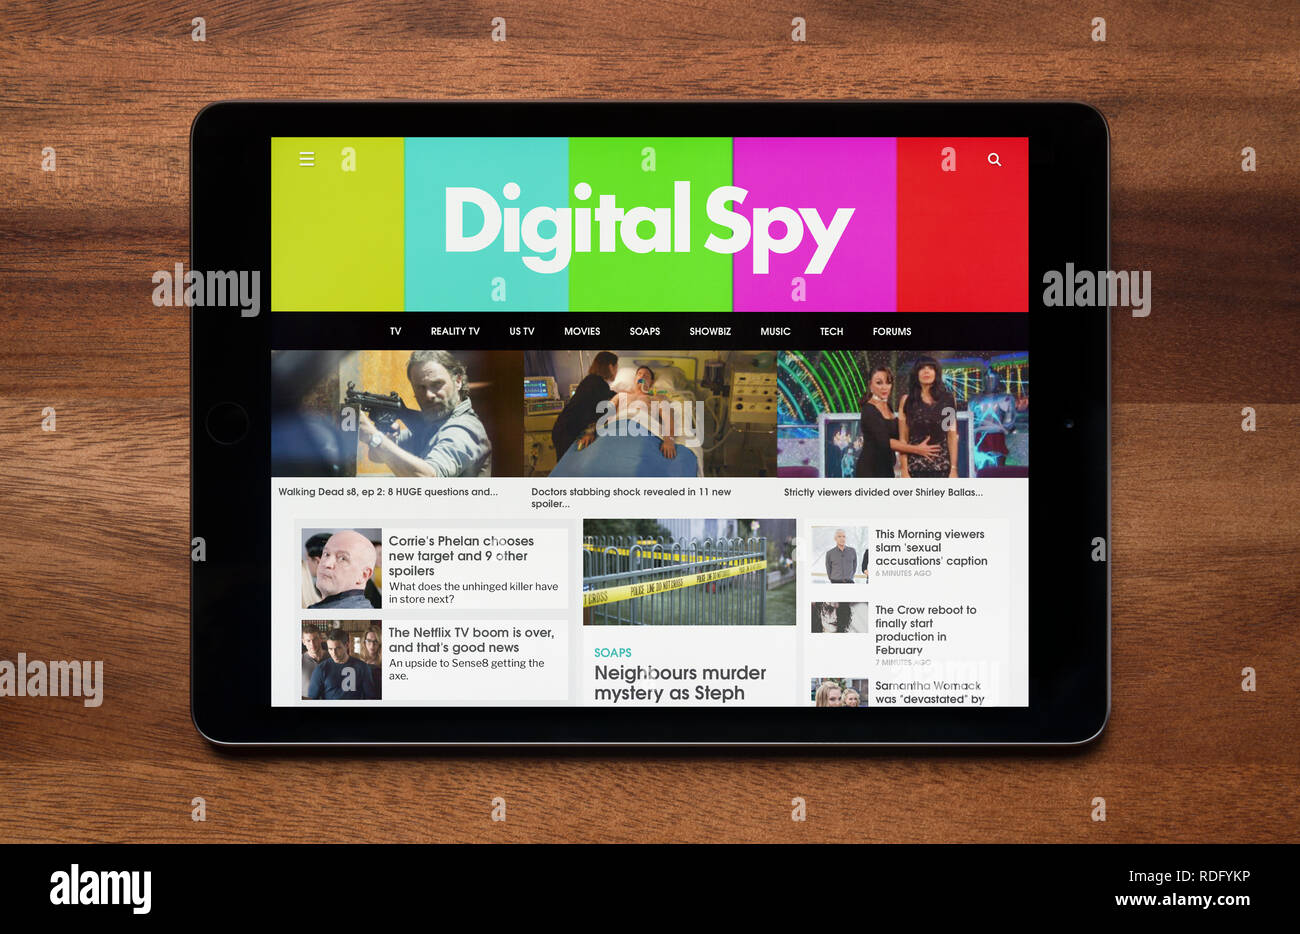 The website of Digital Spy is seen on an iPad tablet, which is resting on a wooden table (Editorial use only). - Stock Image